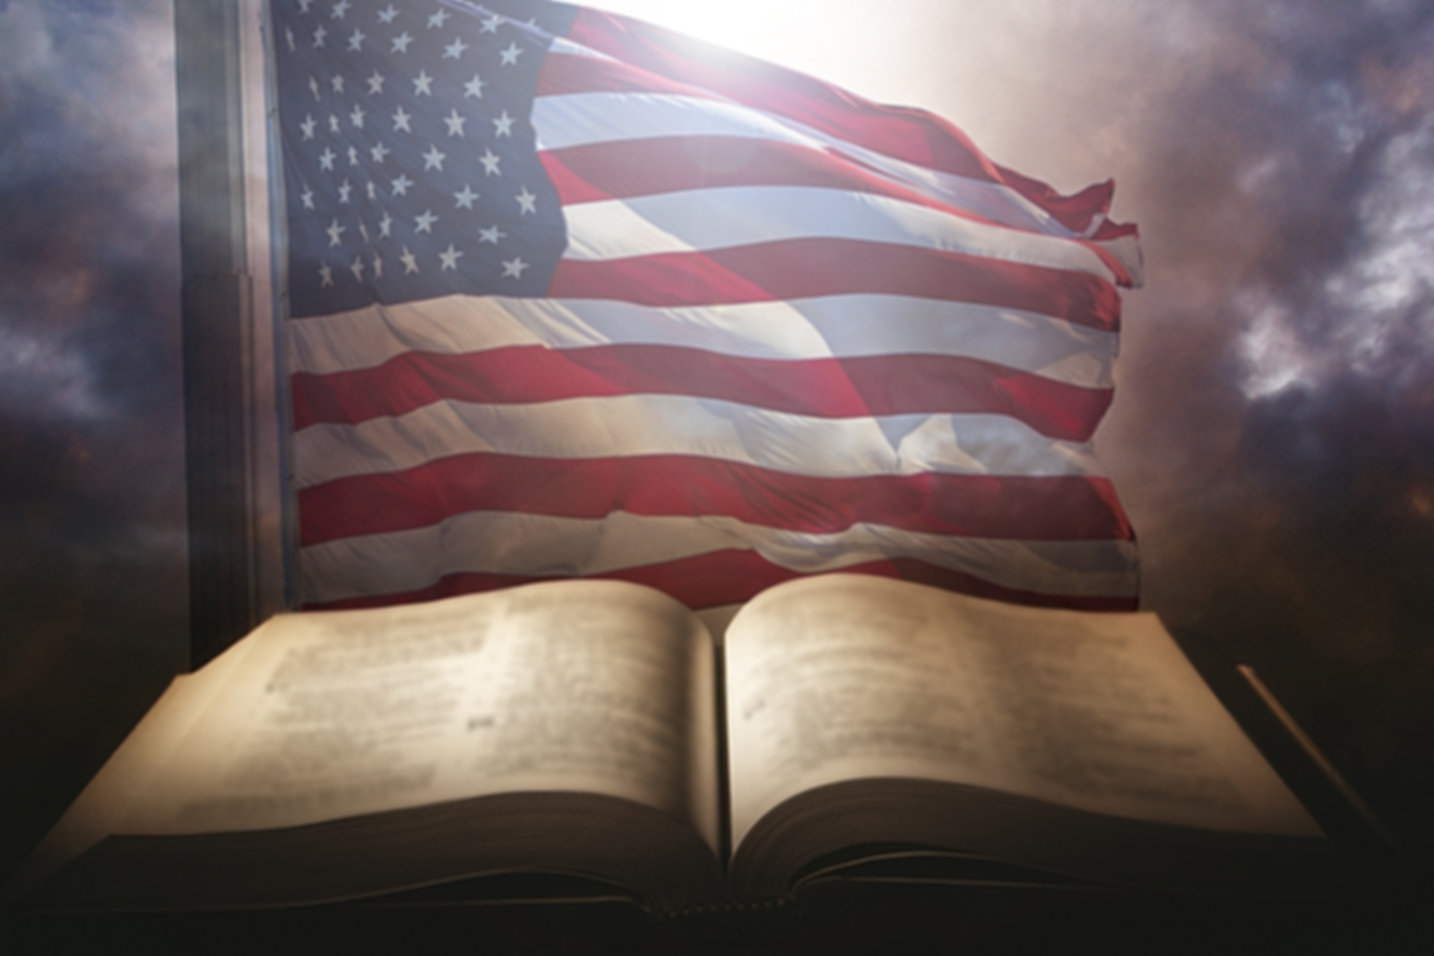 Holy Bible with the american flag in the